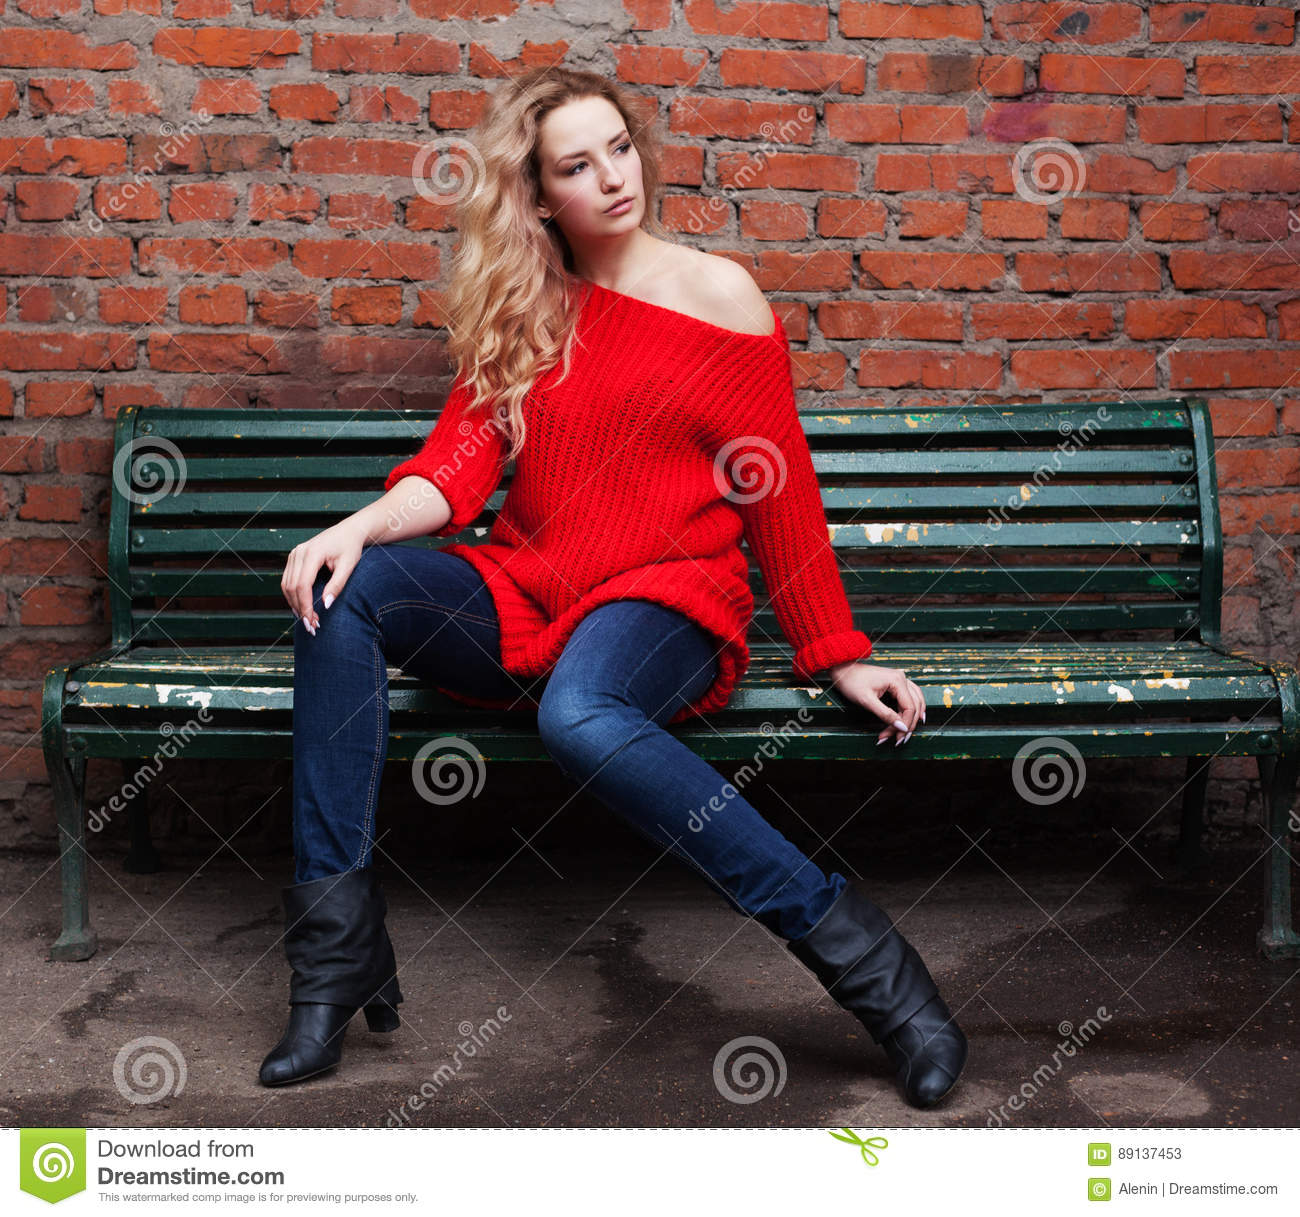 An Incredible Blonde Girl Posing In A Trendy Red Sweater, Jeans ...